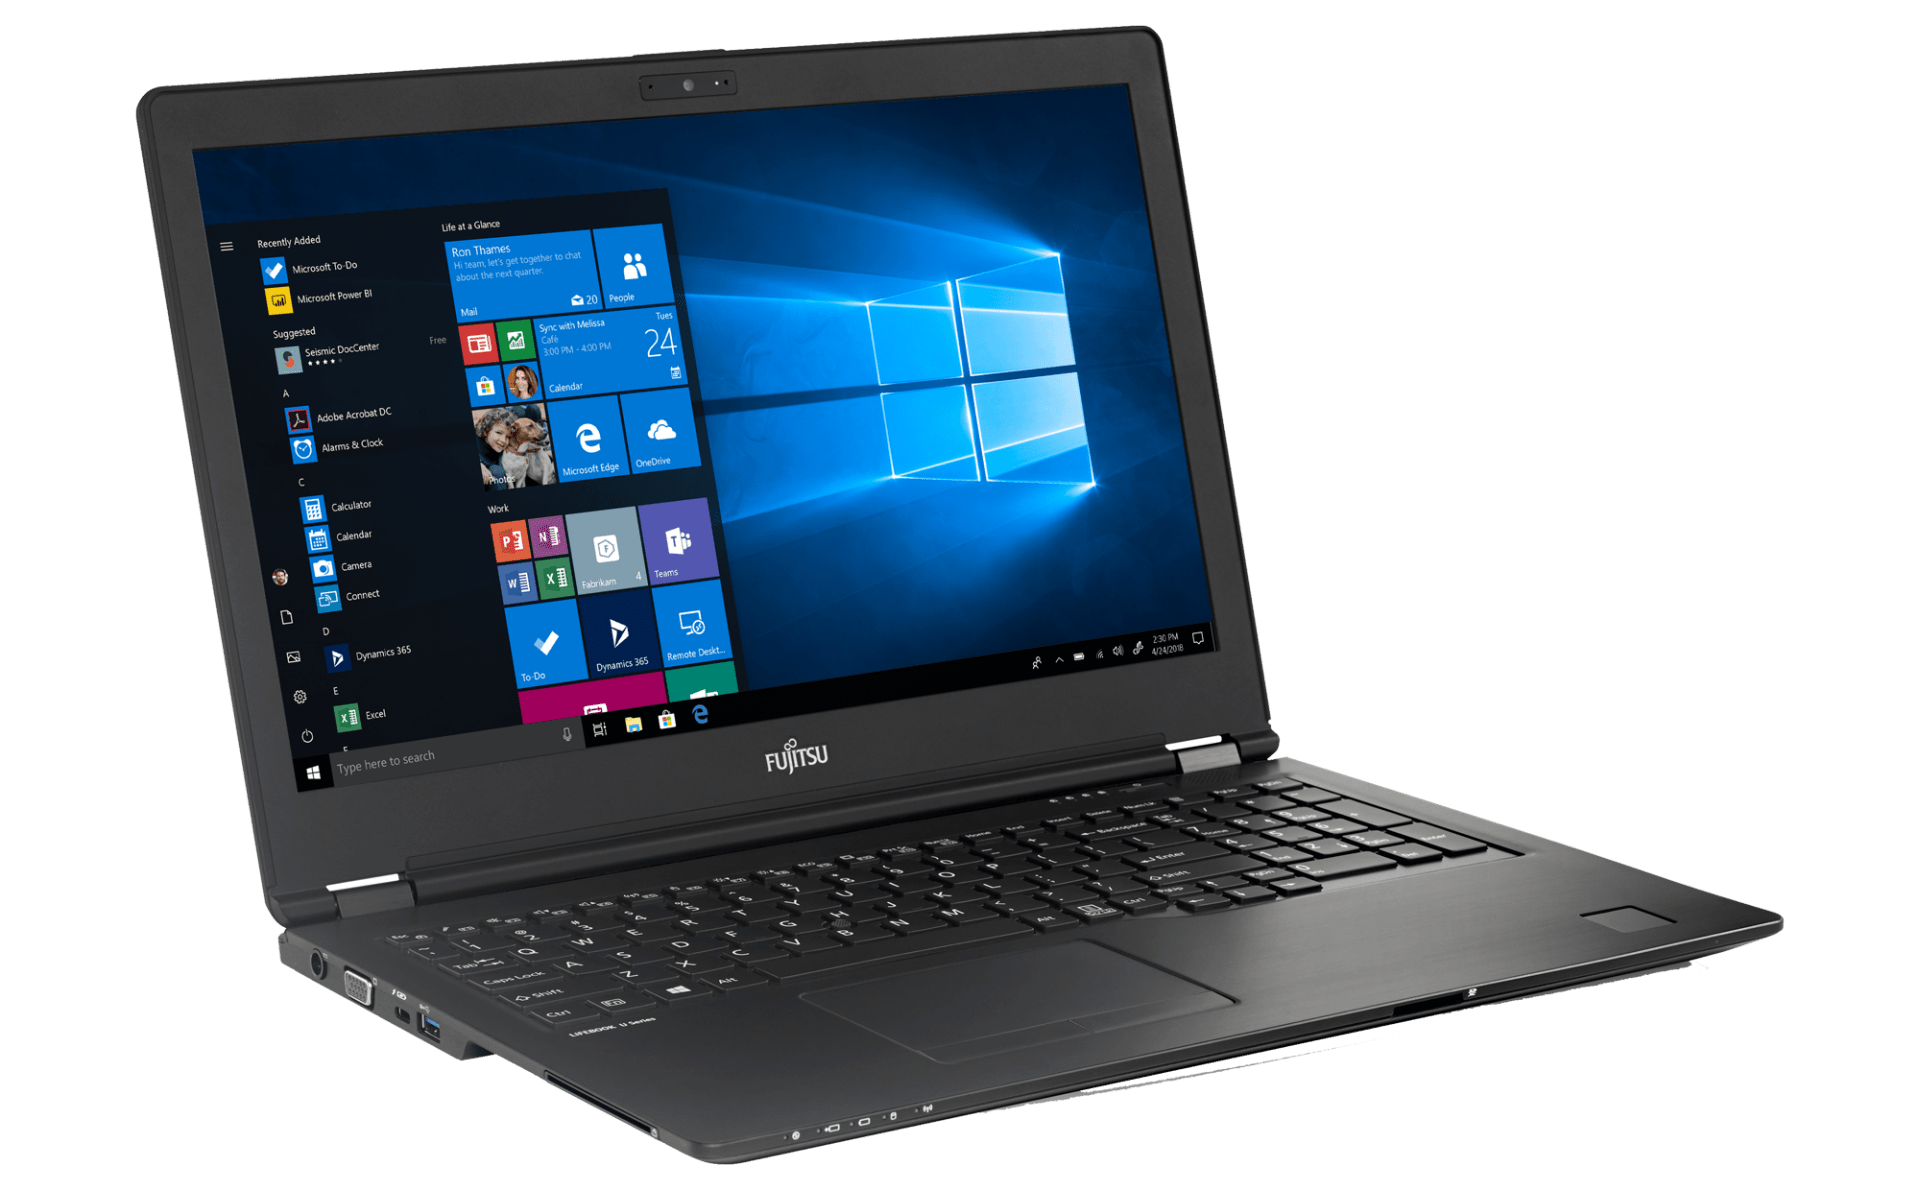 Lifebook U759 15,6 inch laptops